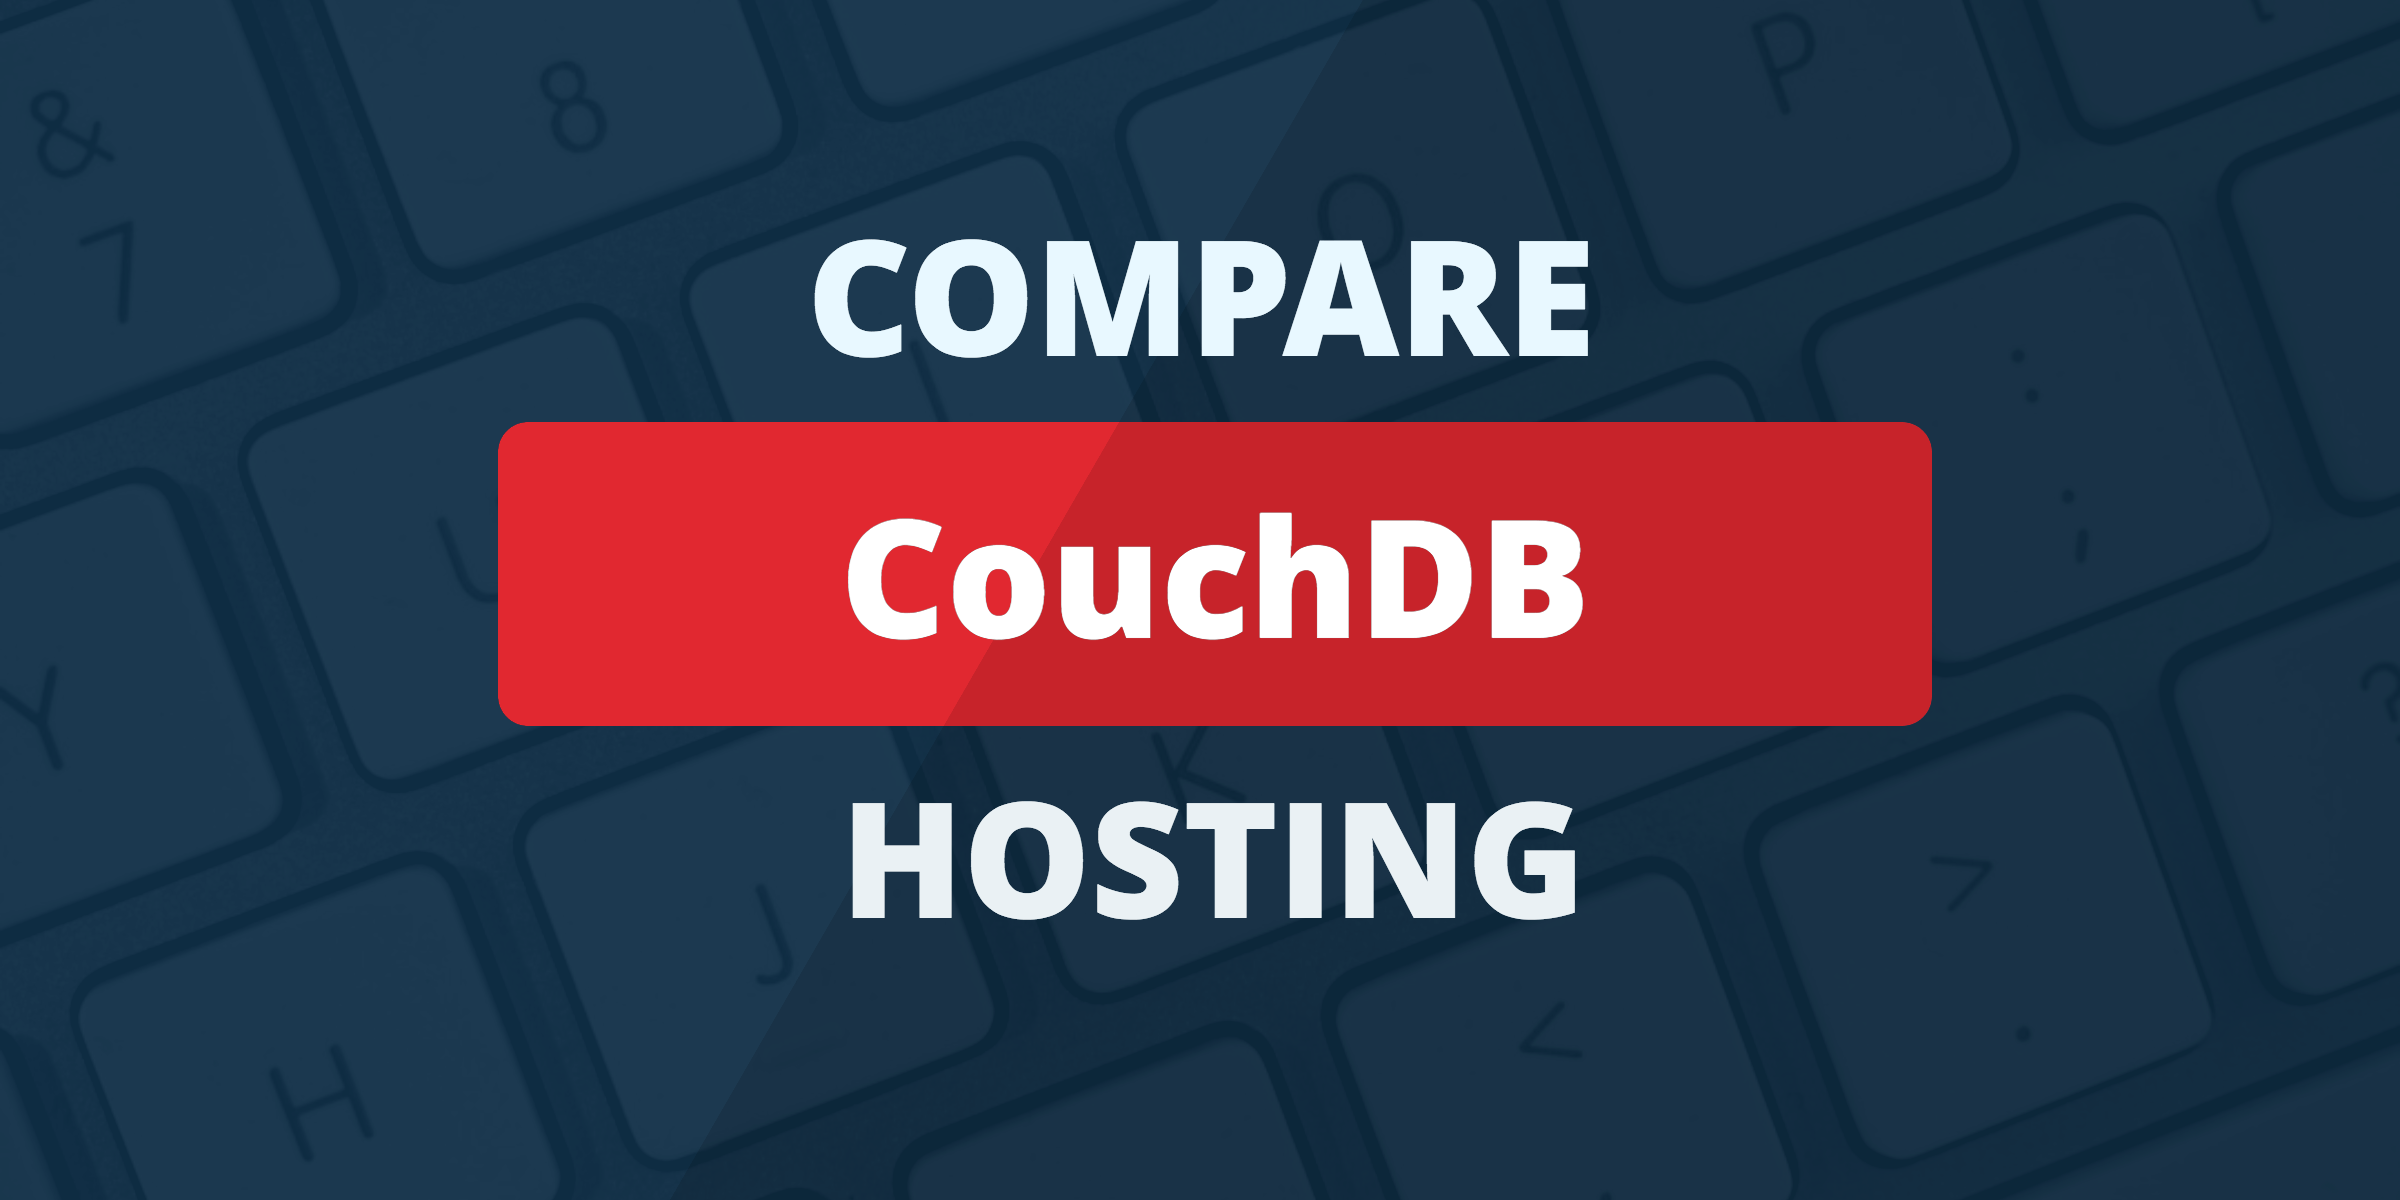 compare couchdb hosting